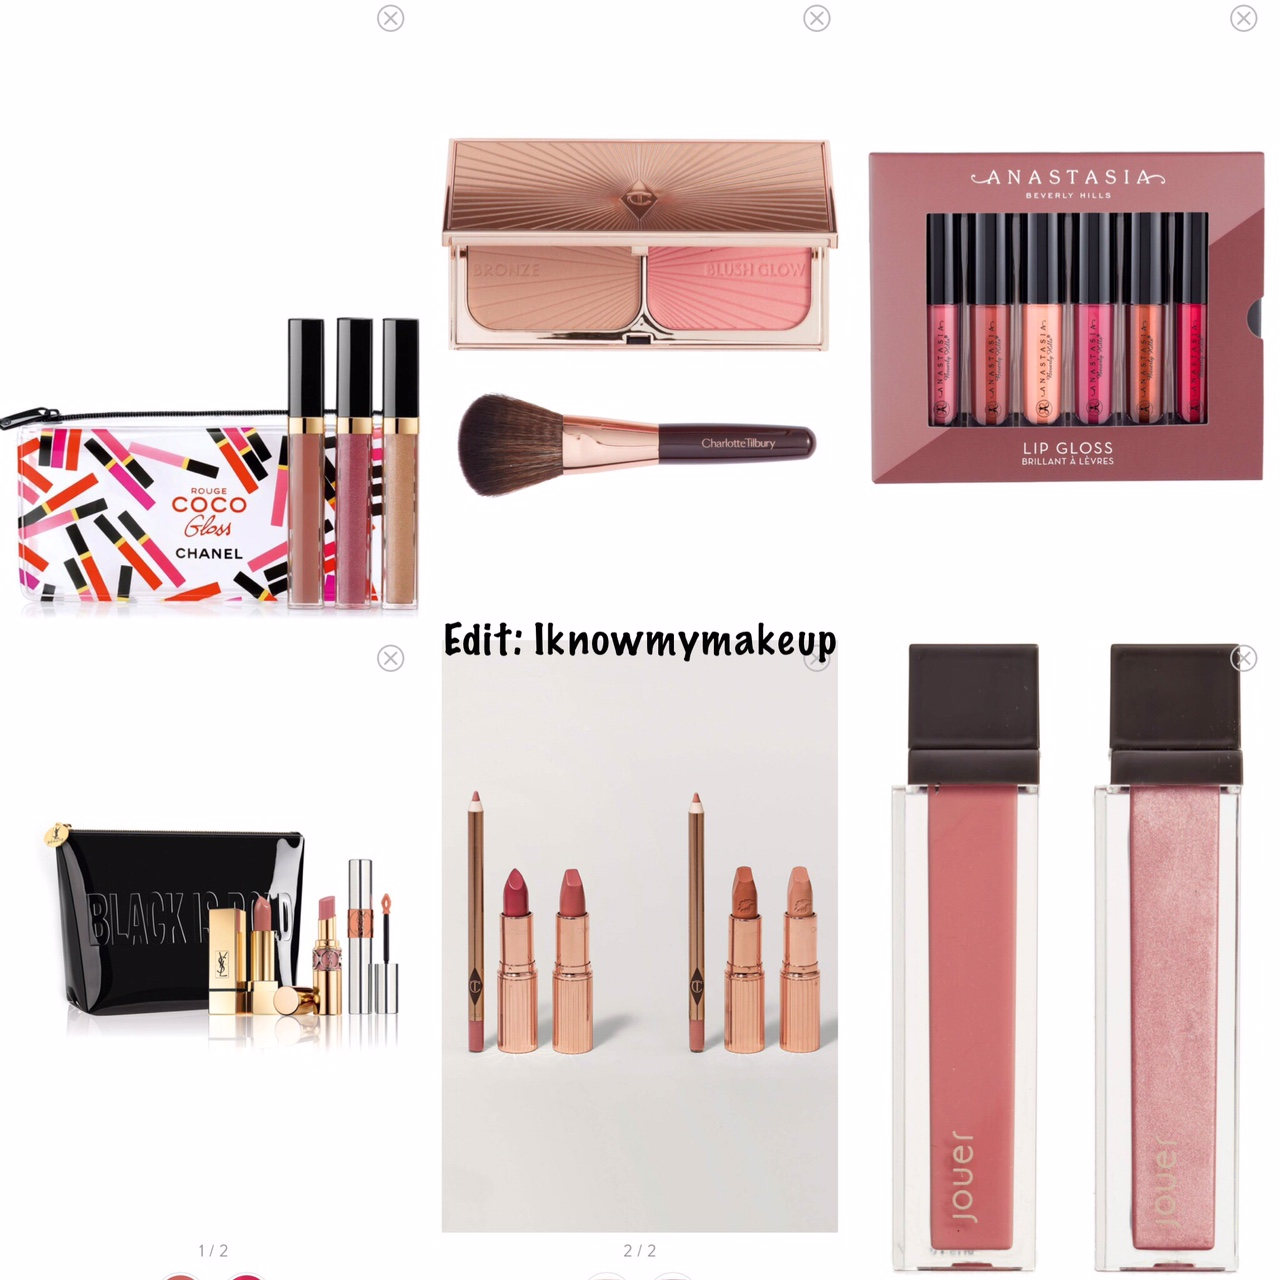 5032d717d5b ... weeks ago (see that post here), but now that early access has started,  we are privy to ALL the beauty exclusives that the Nordstrom Anniversary  Sale ...